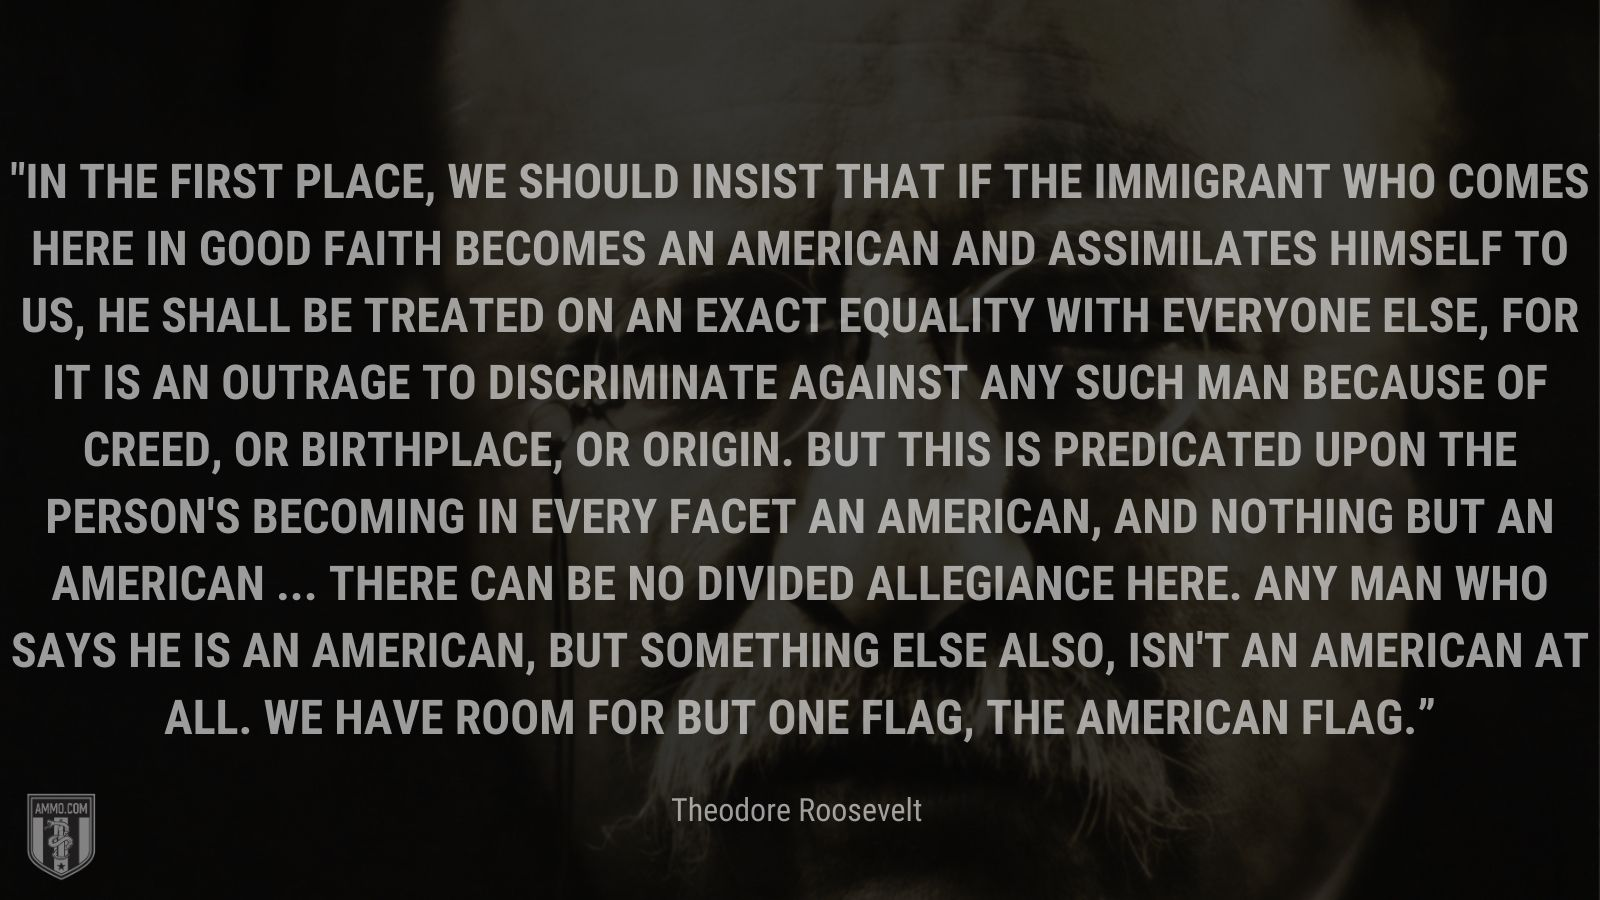 """""""In the first place, we should insist that if the immigrant who comes here in good faith becomes an American and assimilates himself to us, he shall be treated on an exact equality with everyone else, for it is an outrage to discriminate against any such man because of creed, or birthplace, or origin. But this is predicated upon the person's becoming in every facet an American, and nothing but an American ... There can be no divided allegiance here. Any man who says he is an American, but something else also, isn't an American at all. We have room for but one flag, the American flag."""" - Theodore Roosevelt"""